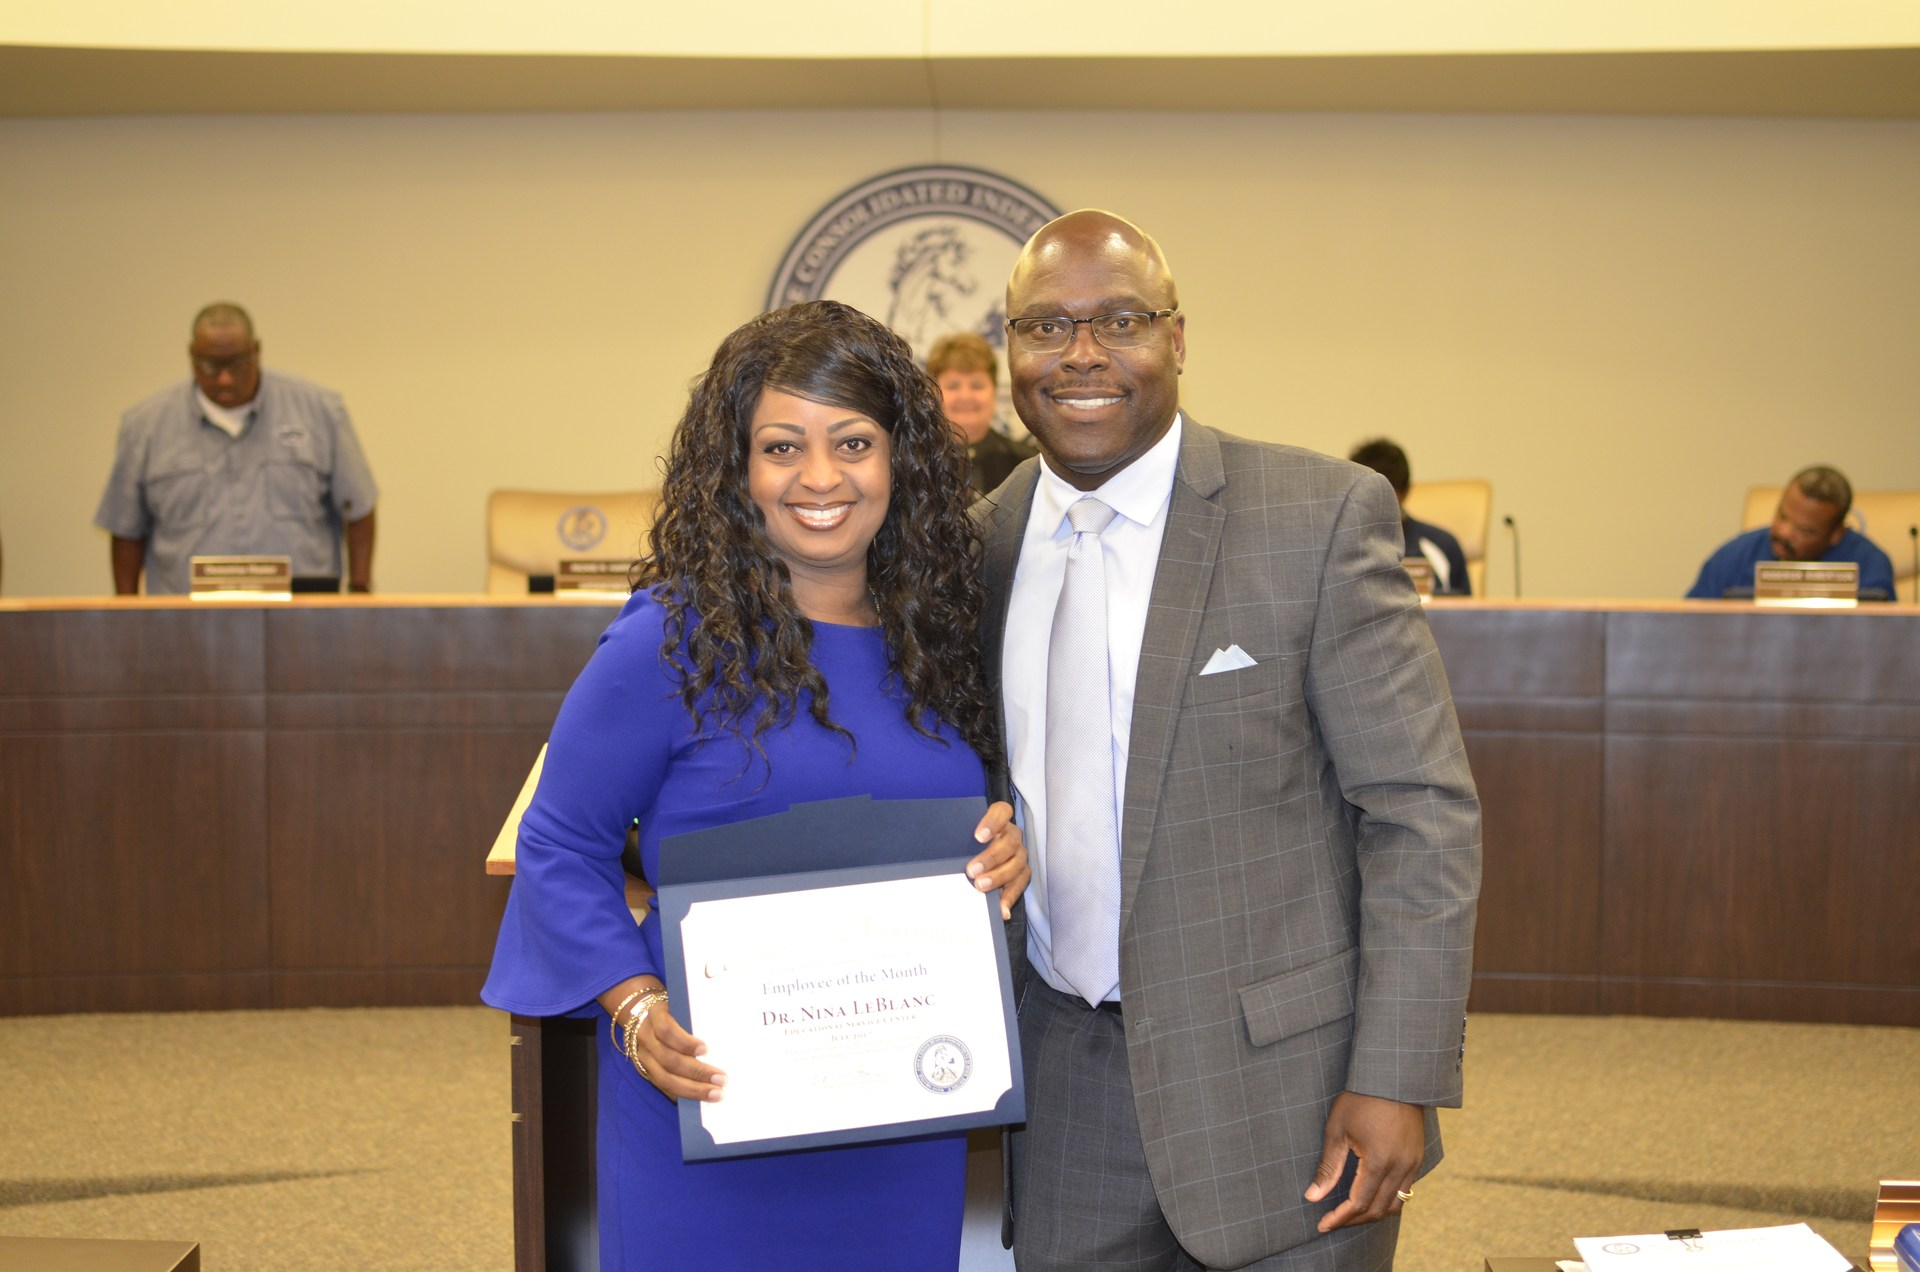 Dr. Nina LeBlance is recognized as Employee of the Month